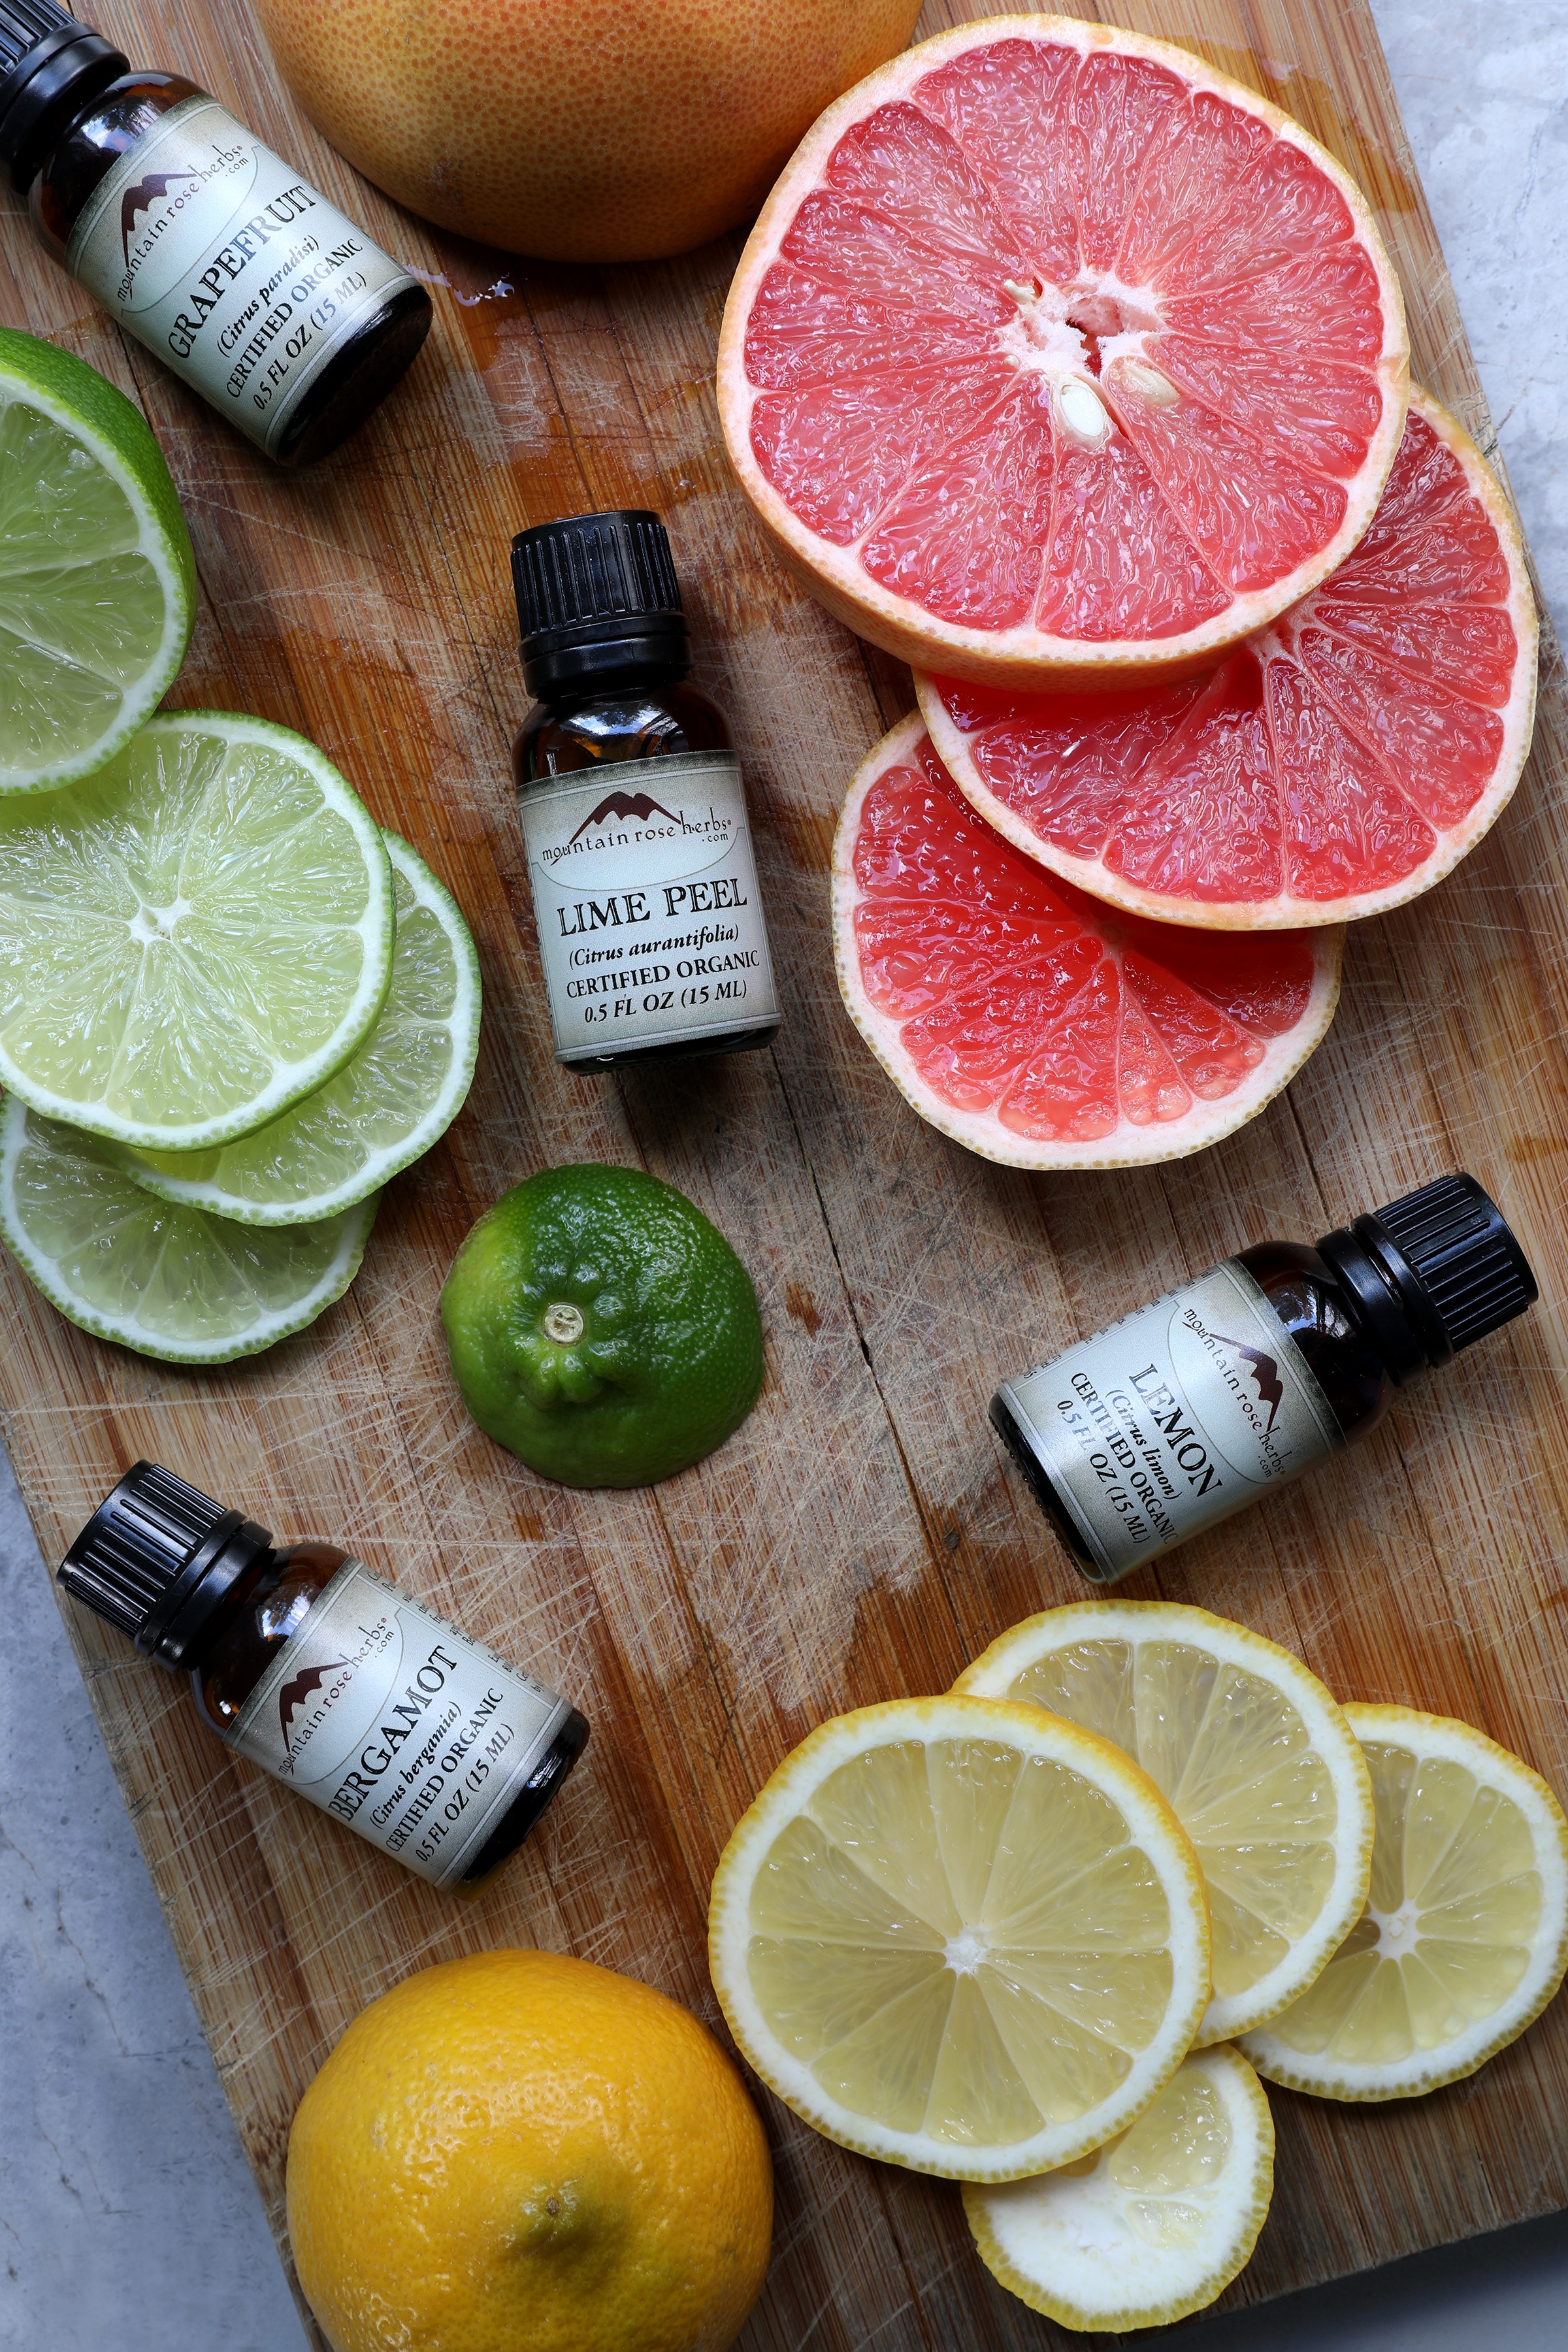 Lime peel essential oil, bergamot essential oil, lemon essential oil, and grapefruit essential oil on wooden chopping board with fresh fruit